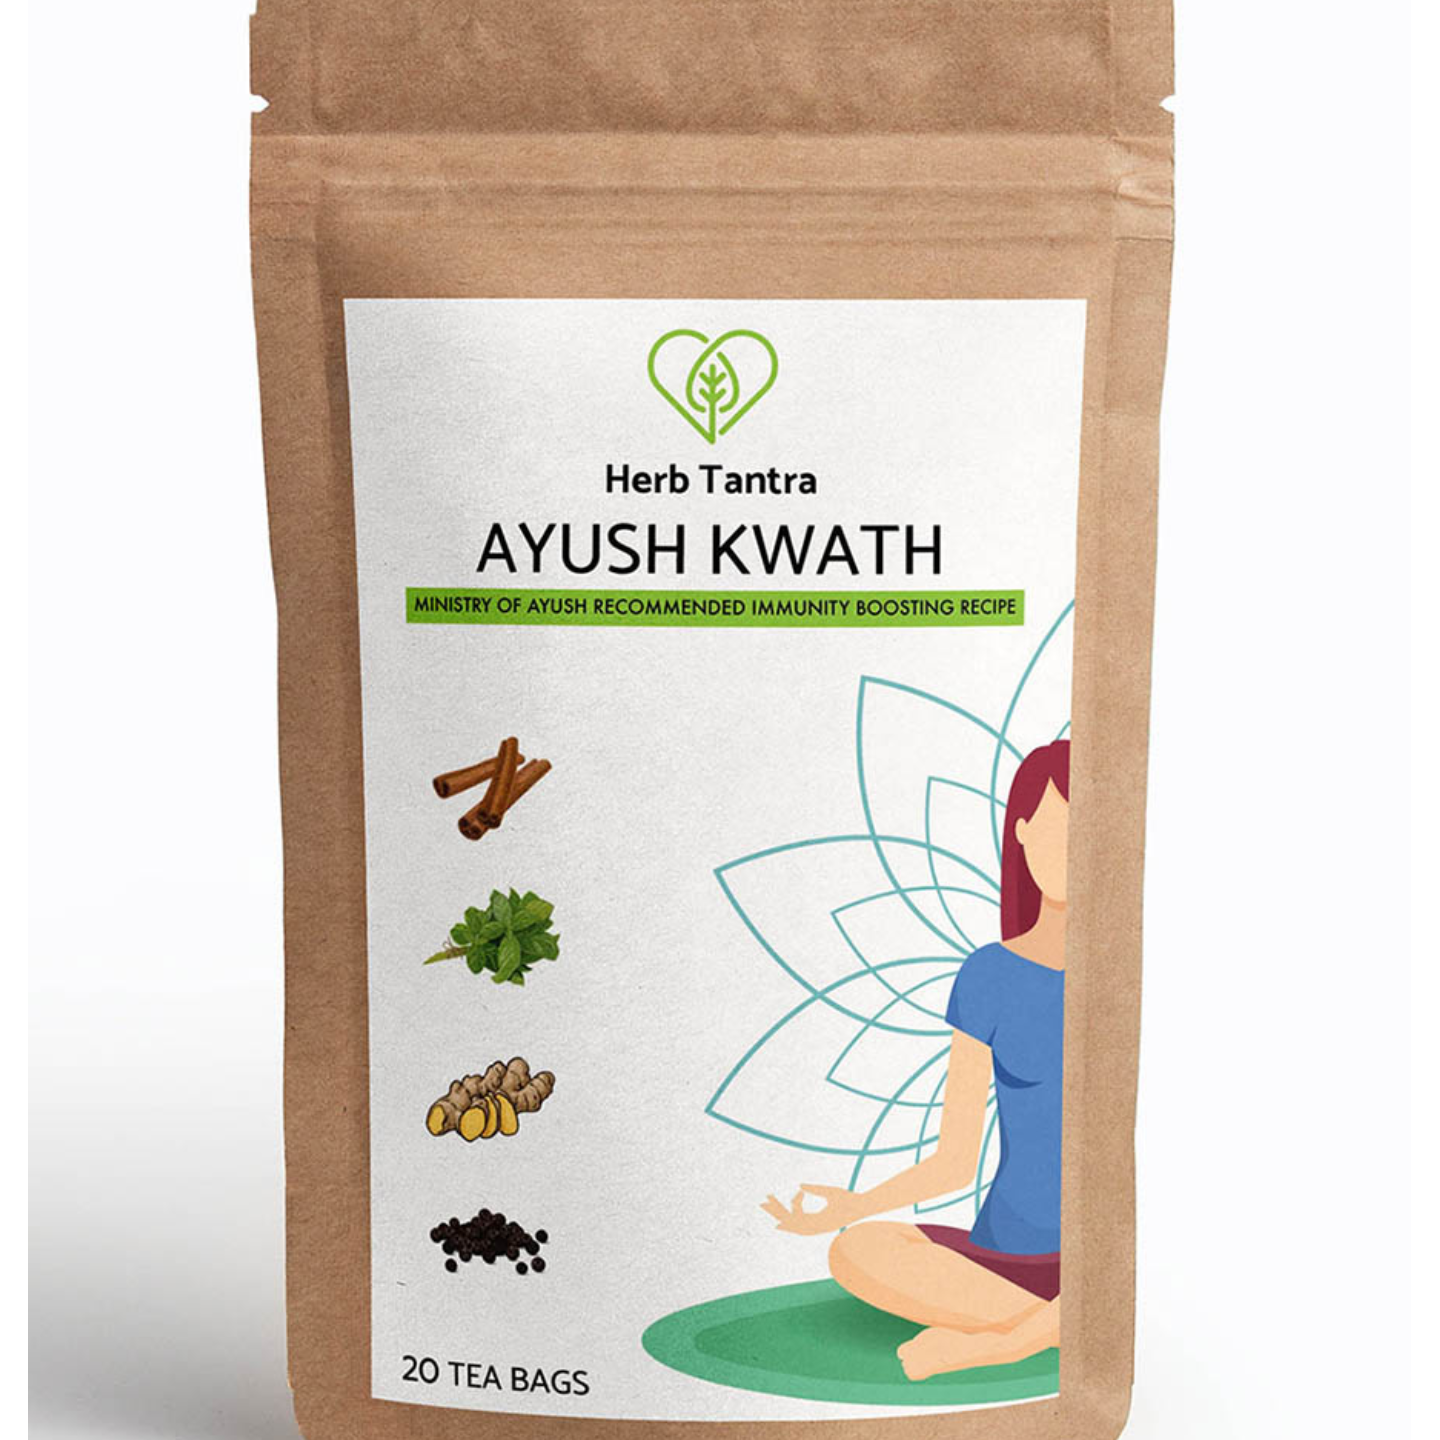 Herb Tantra Ayush Kwath Immunity Booster Tea (20 Tea Bags)